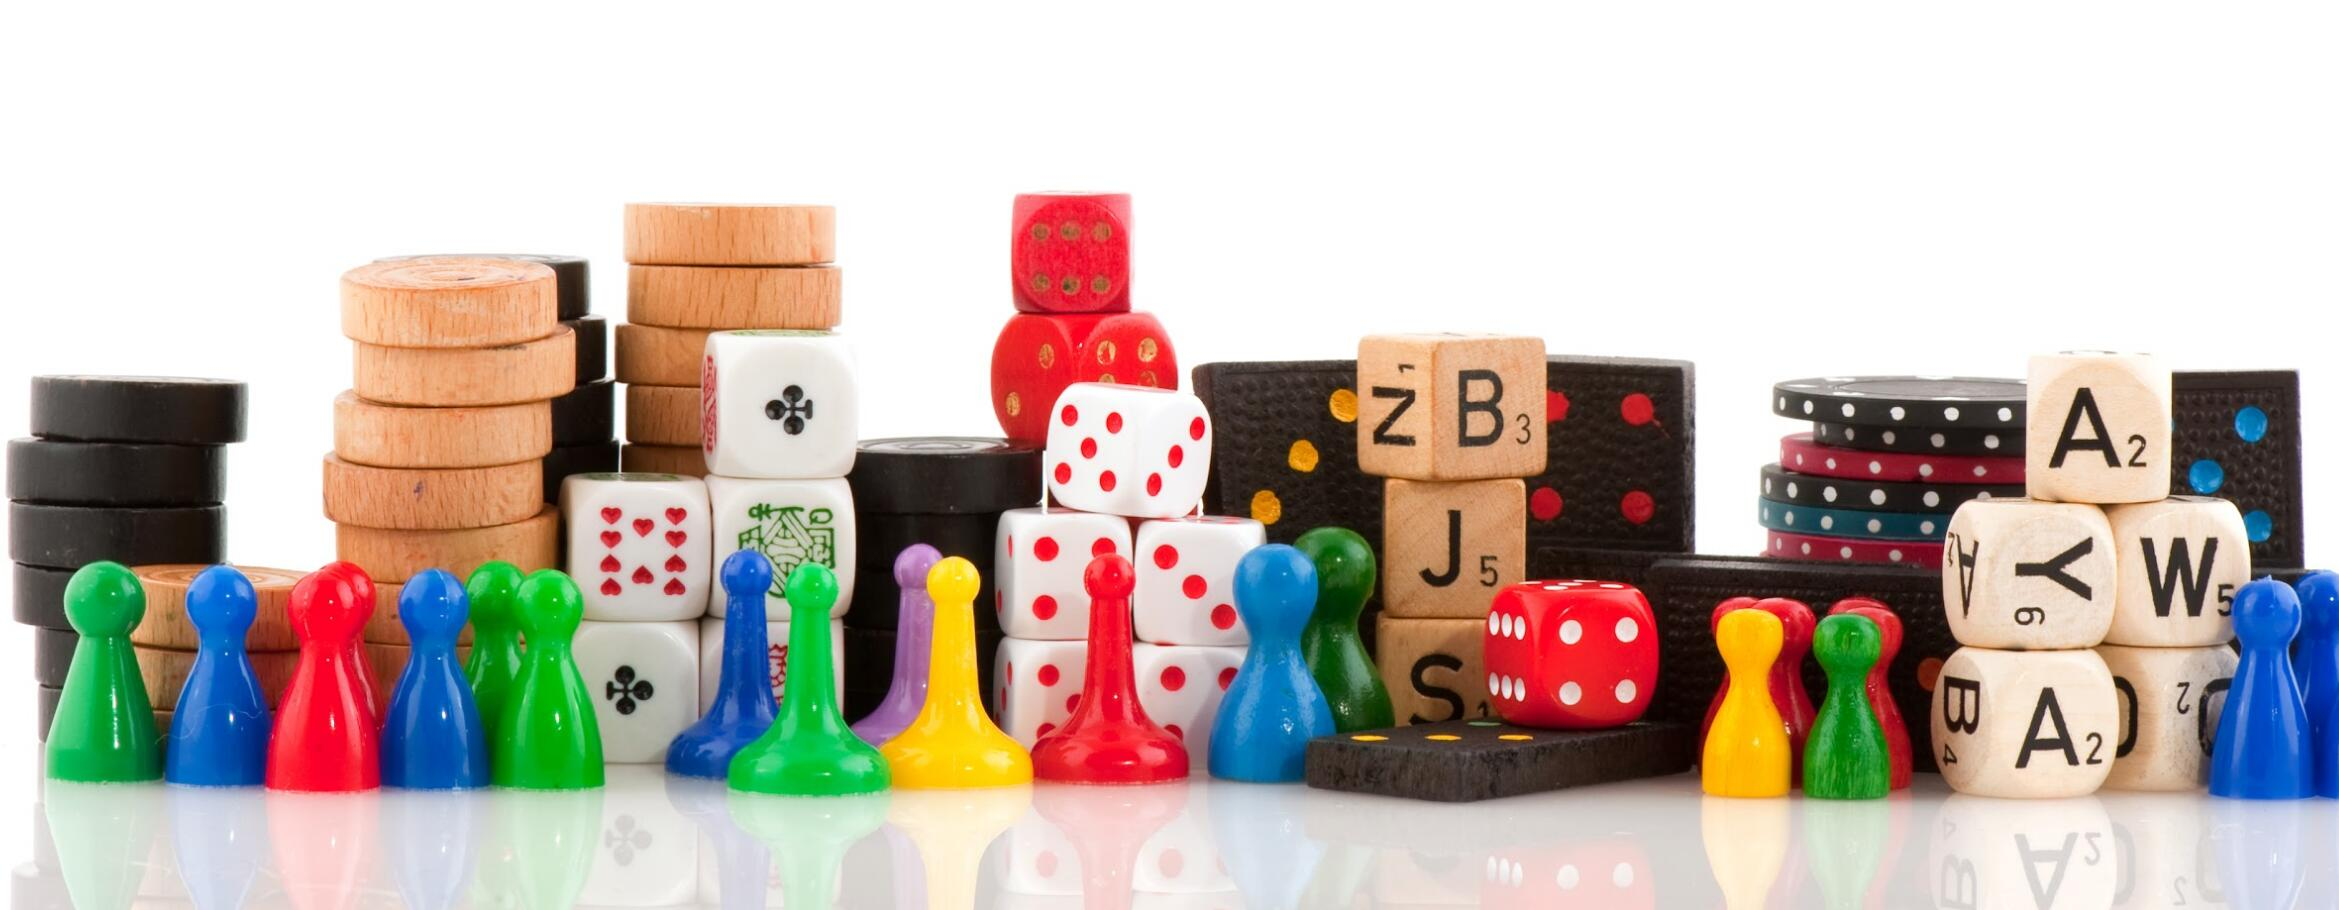 puzzles 8 Reasons To Bring These 7 Board Games And Jigsaw Puzzles To Your Next Sleepover